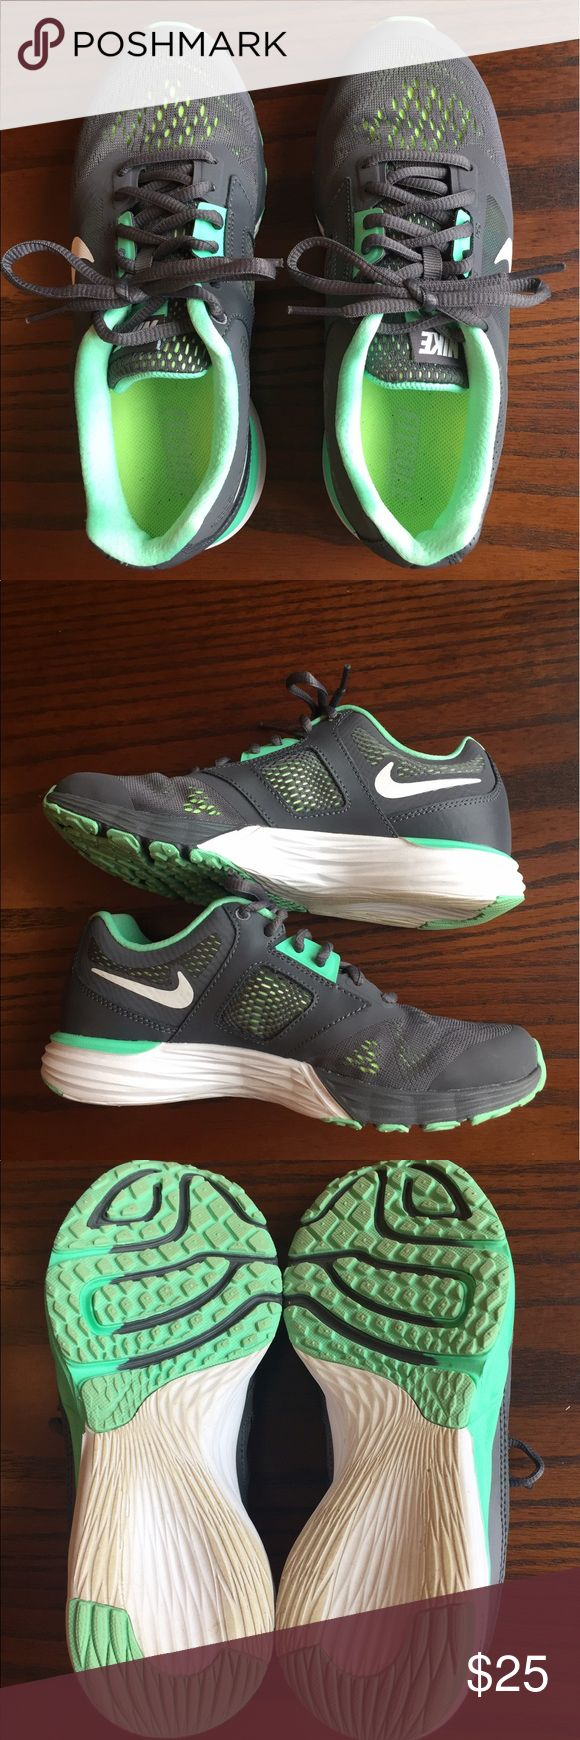 Nike Tri Fusion shoes Nike Tri Fusion shoes. Only worn twice. My feet grew after I had a baby and I can't fit into them.  Like new condition. Super cute grey with mint green accents. Nike Shoes Athletic Shoes